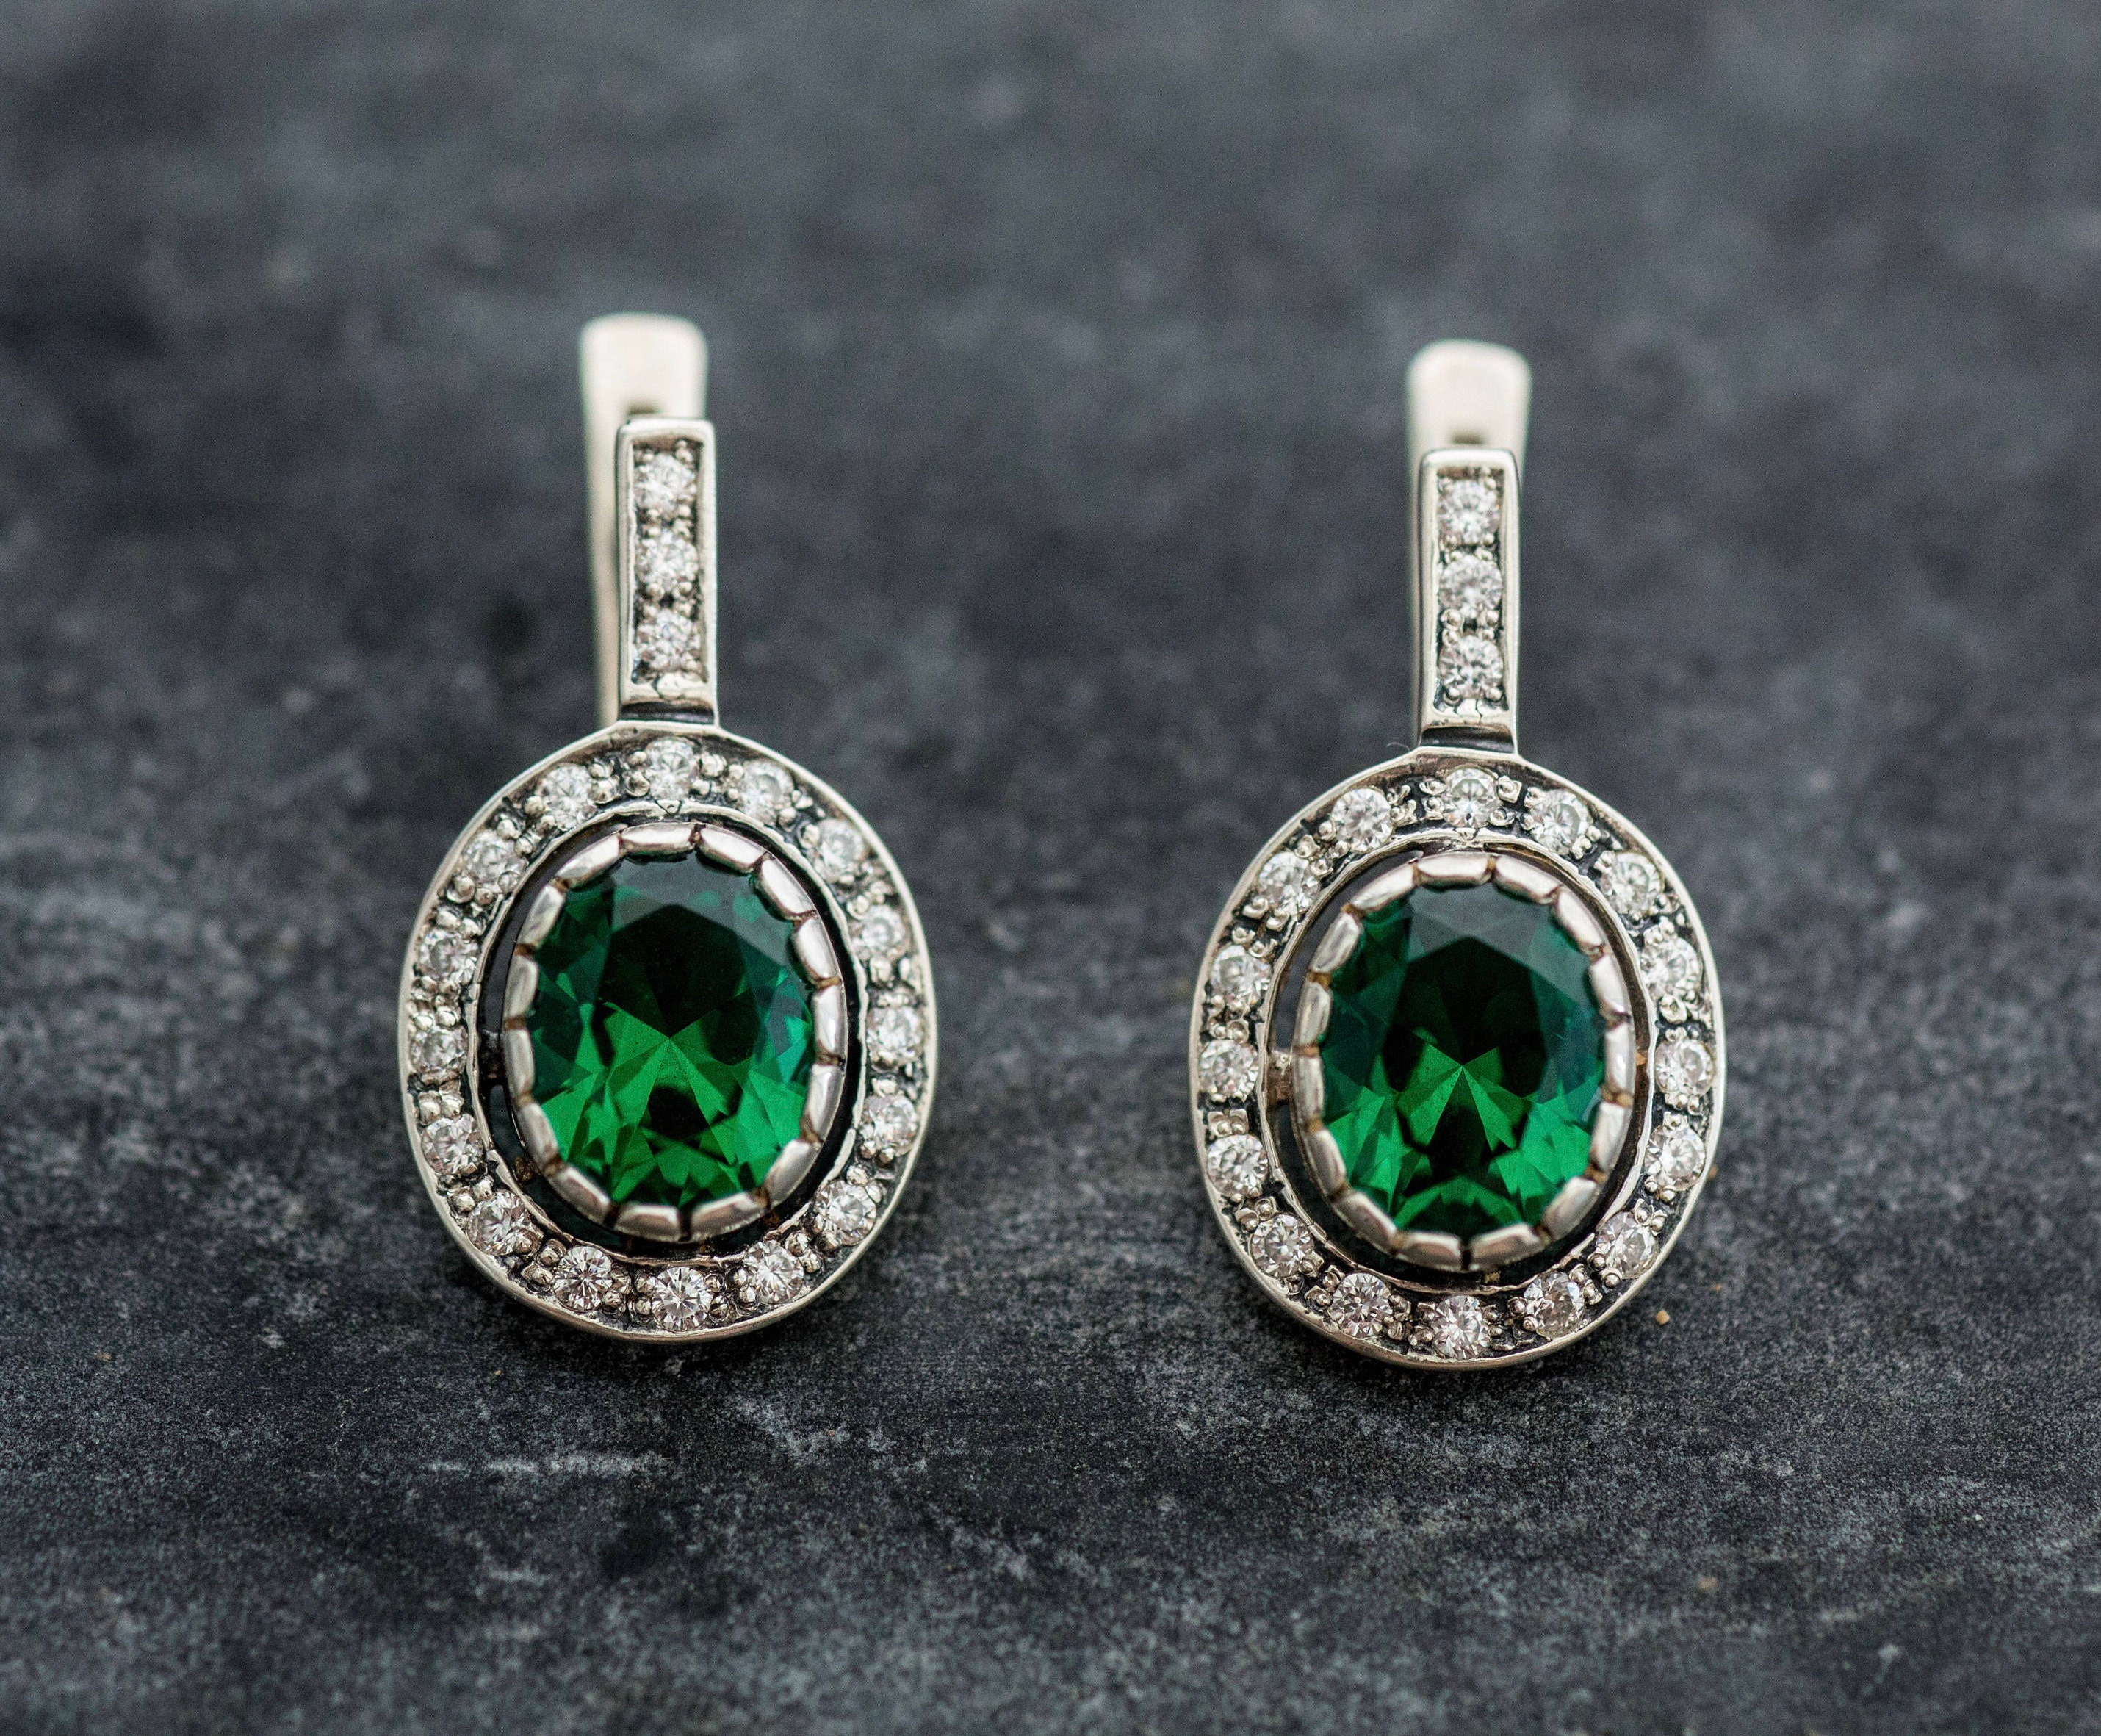 products accessorize pri chiara by esmeralda jewellery brinco earrings emerald